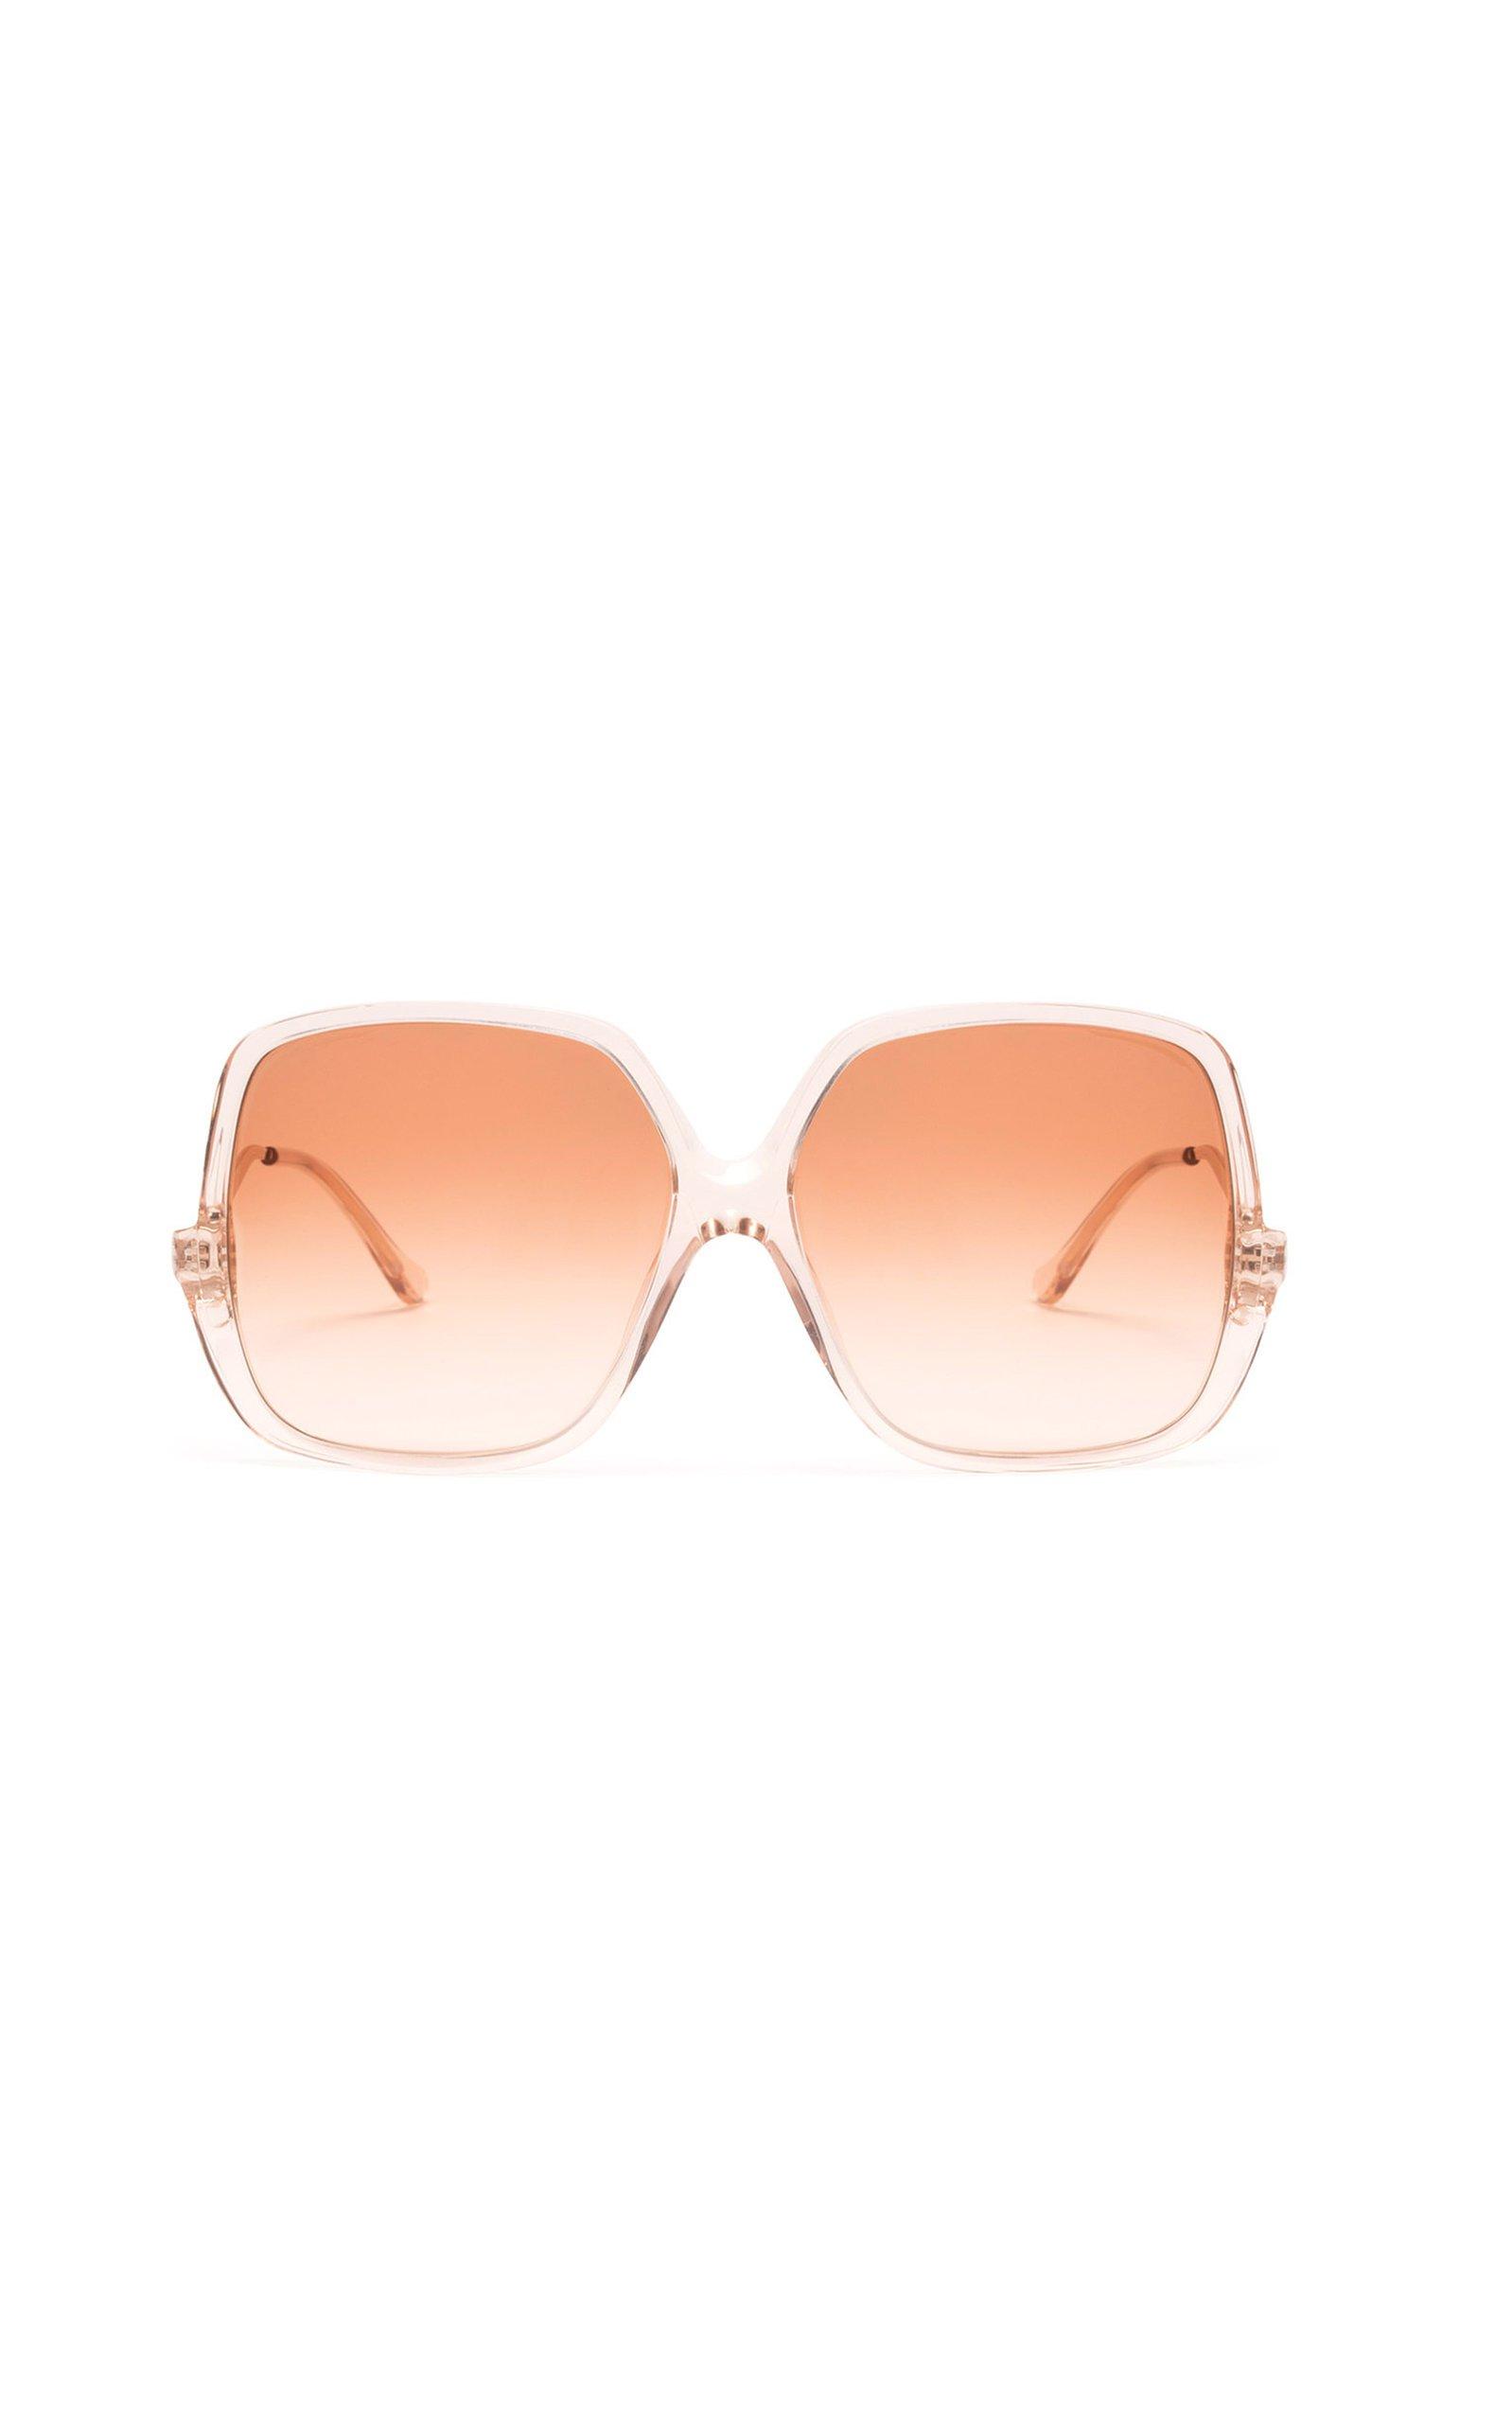 Velvet Canyon Sunday Brunch Oversized Square-Frame Sunglasses